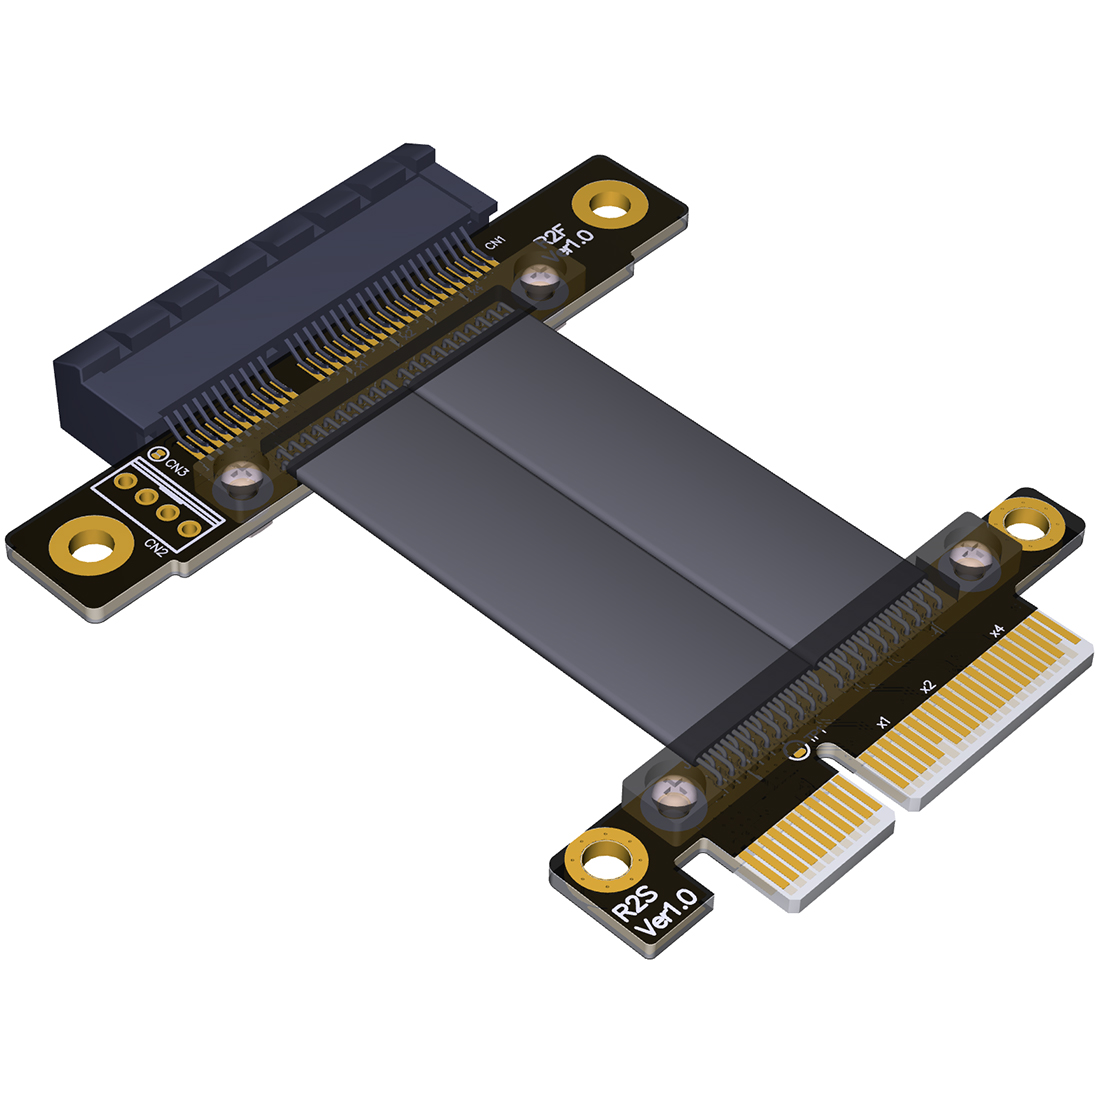 R22SF PCIe 3.0 x4 Male to Female Extension Cable PCI Express Gen3 Motherboard Graphics SSD Extender Conversion Riser Card Cable